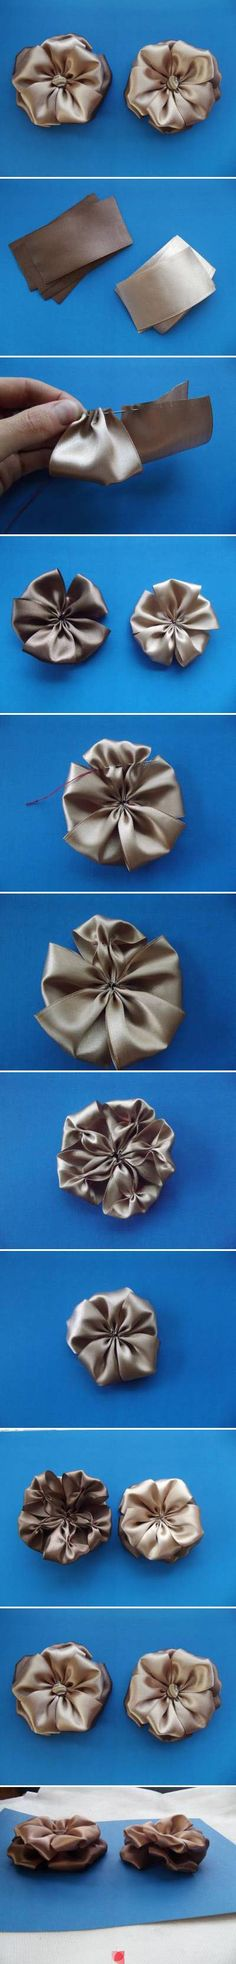 Flowers Diy Fabric Hair Bows Ideas For 2019 Ribbon Art, Diy Ribbon, Fabric Ribbon, Ribbon Crafts, Flower Crafts, Satin Ribbons, Ribbon Rose, Felt Flowers, Diy Flowers